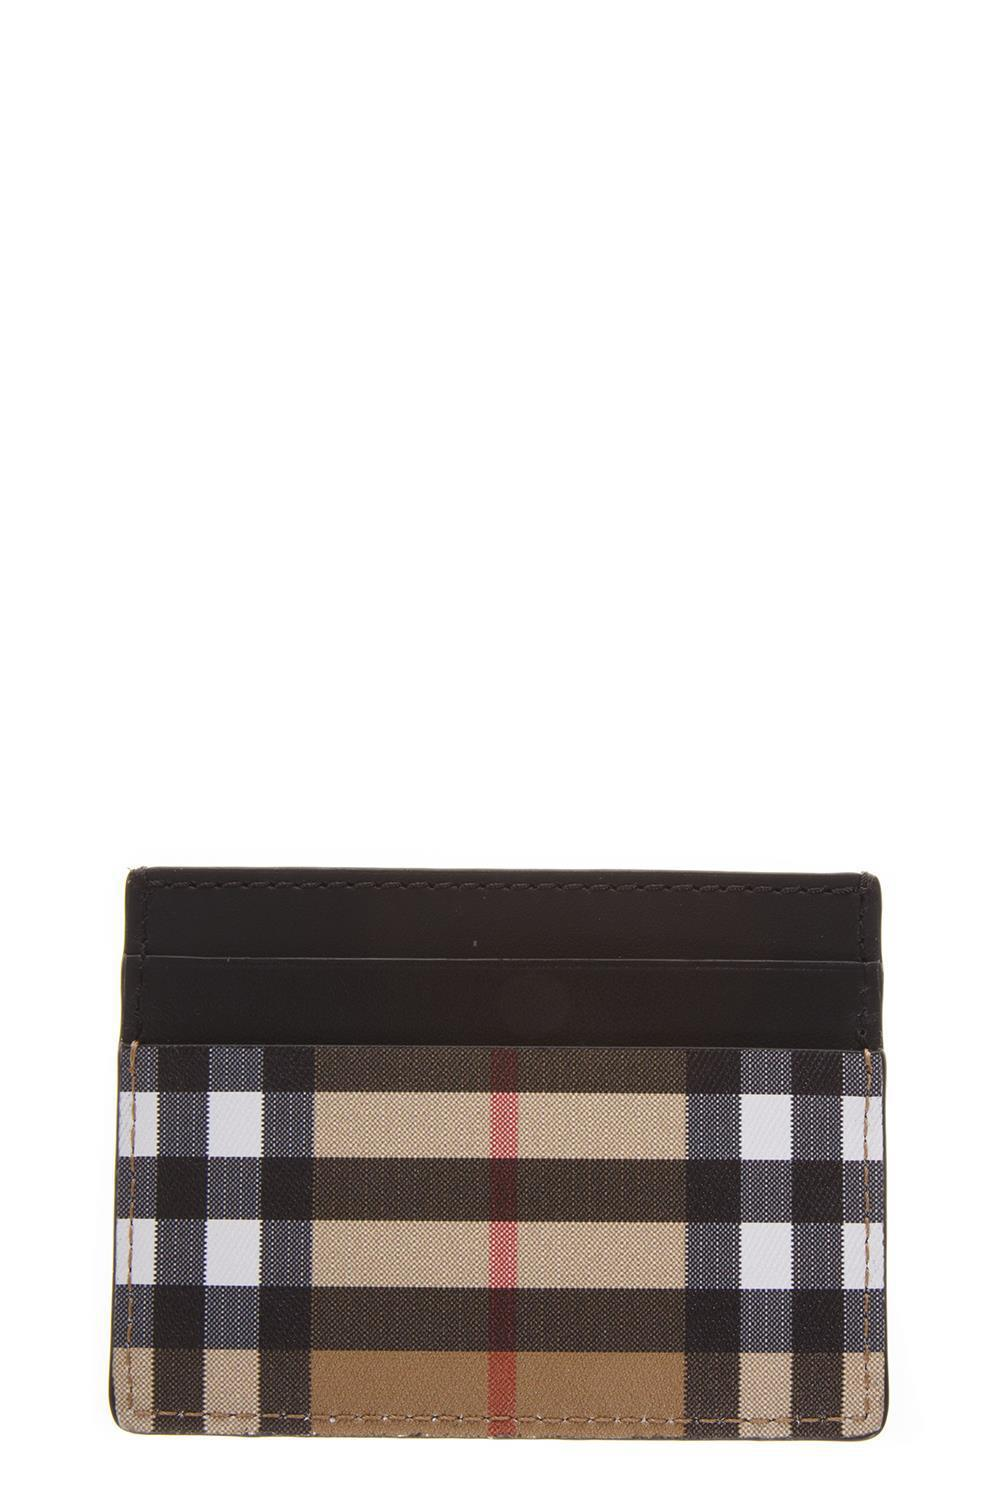 eee85bb56d6 Burberry Sandon Leather Card Holder in Black - Save 27% - Lyst